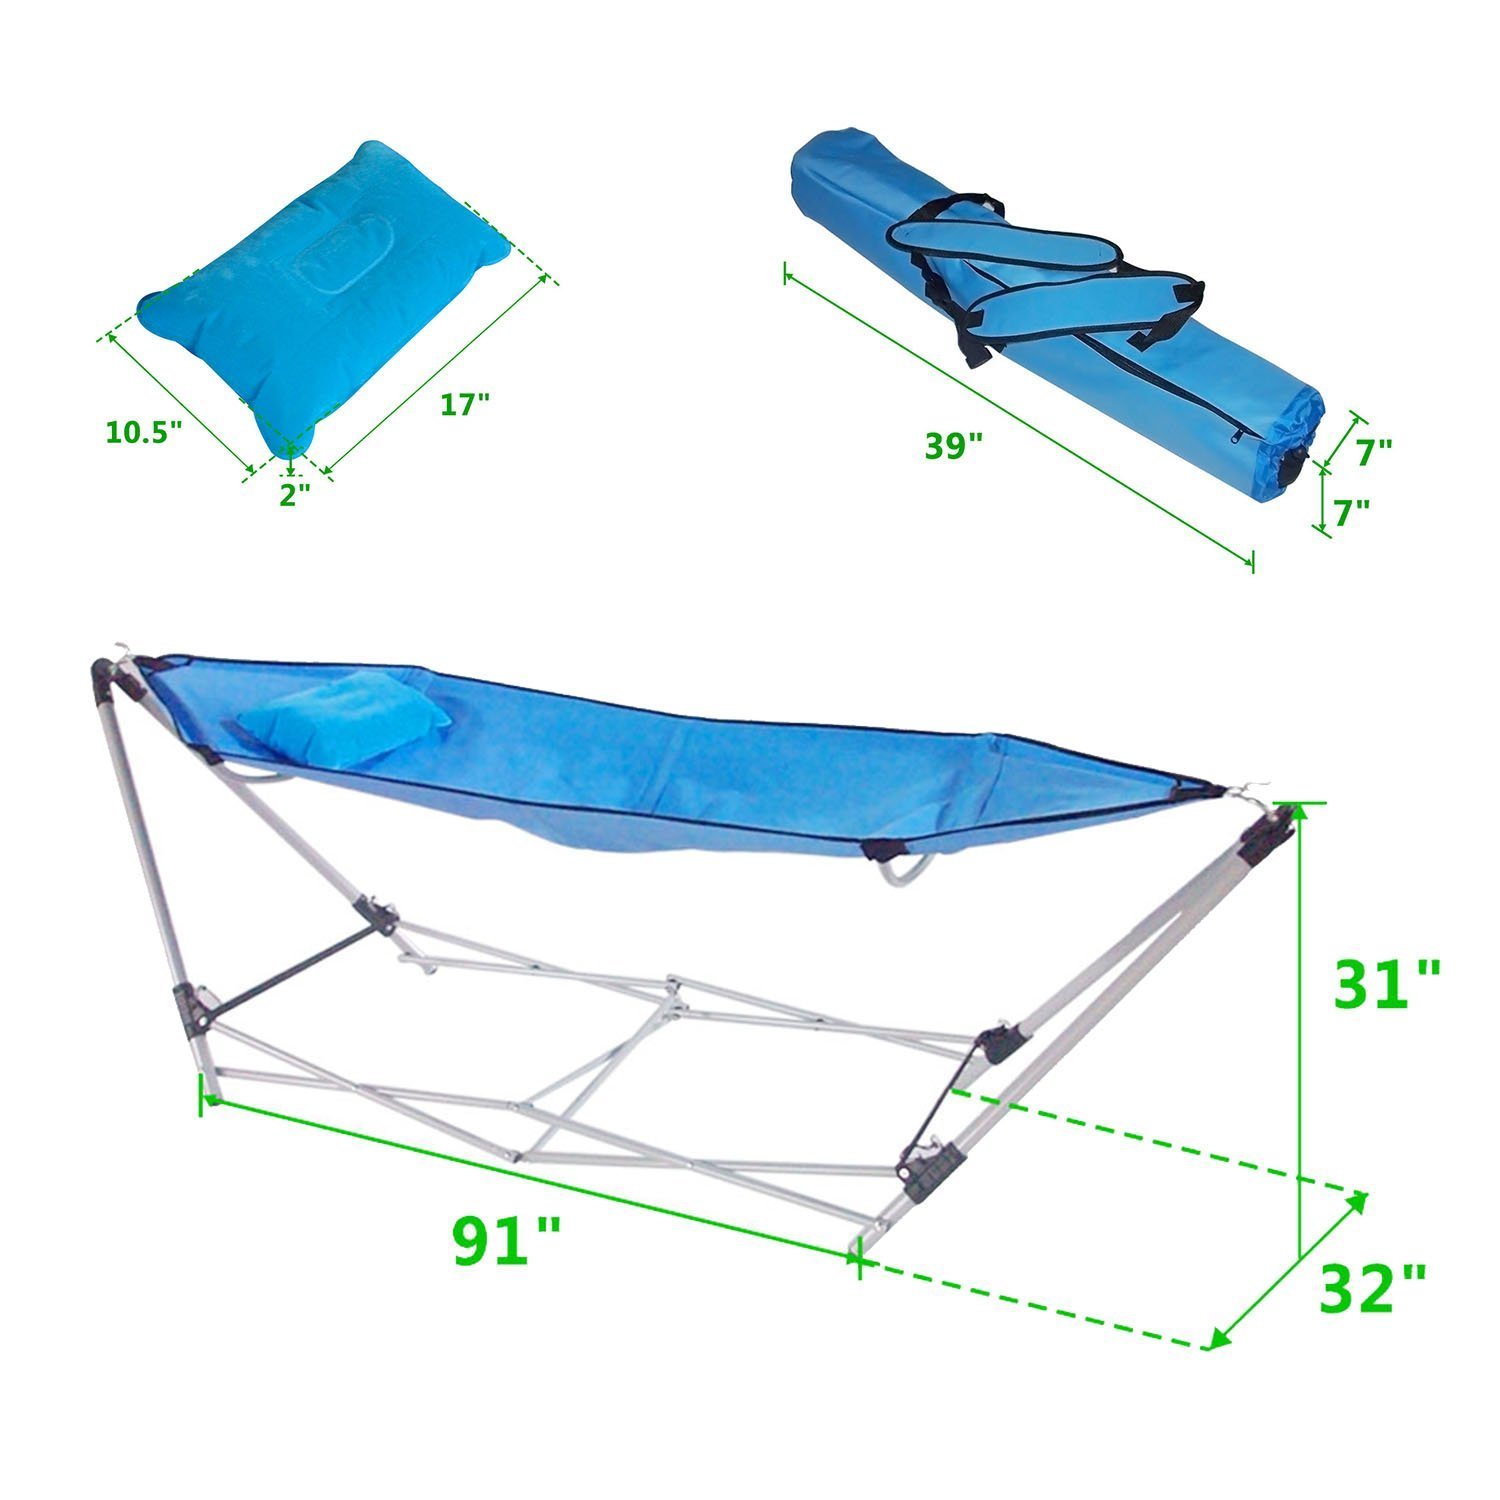 MAX capacity 250 LBS Portable Folding FORDABLE OUTDOOR Camping Hammock Lounge Bed cot with Stand Christmas gift